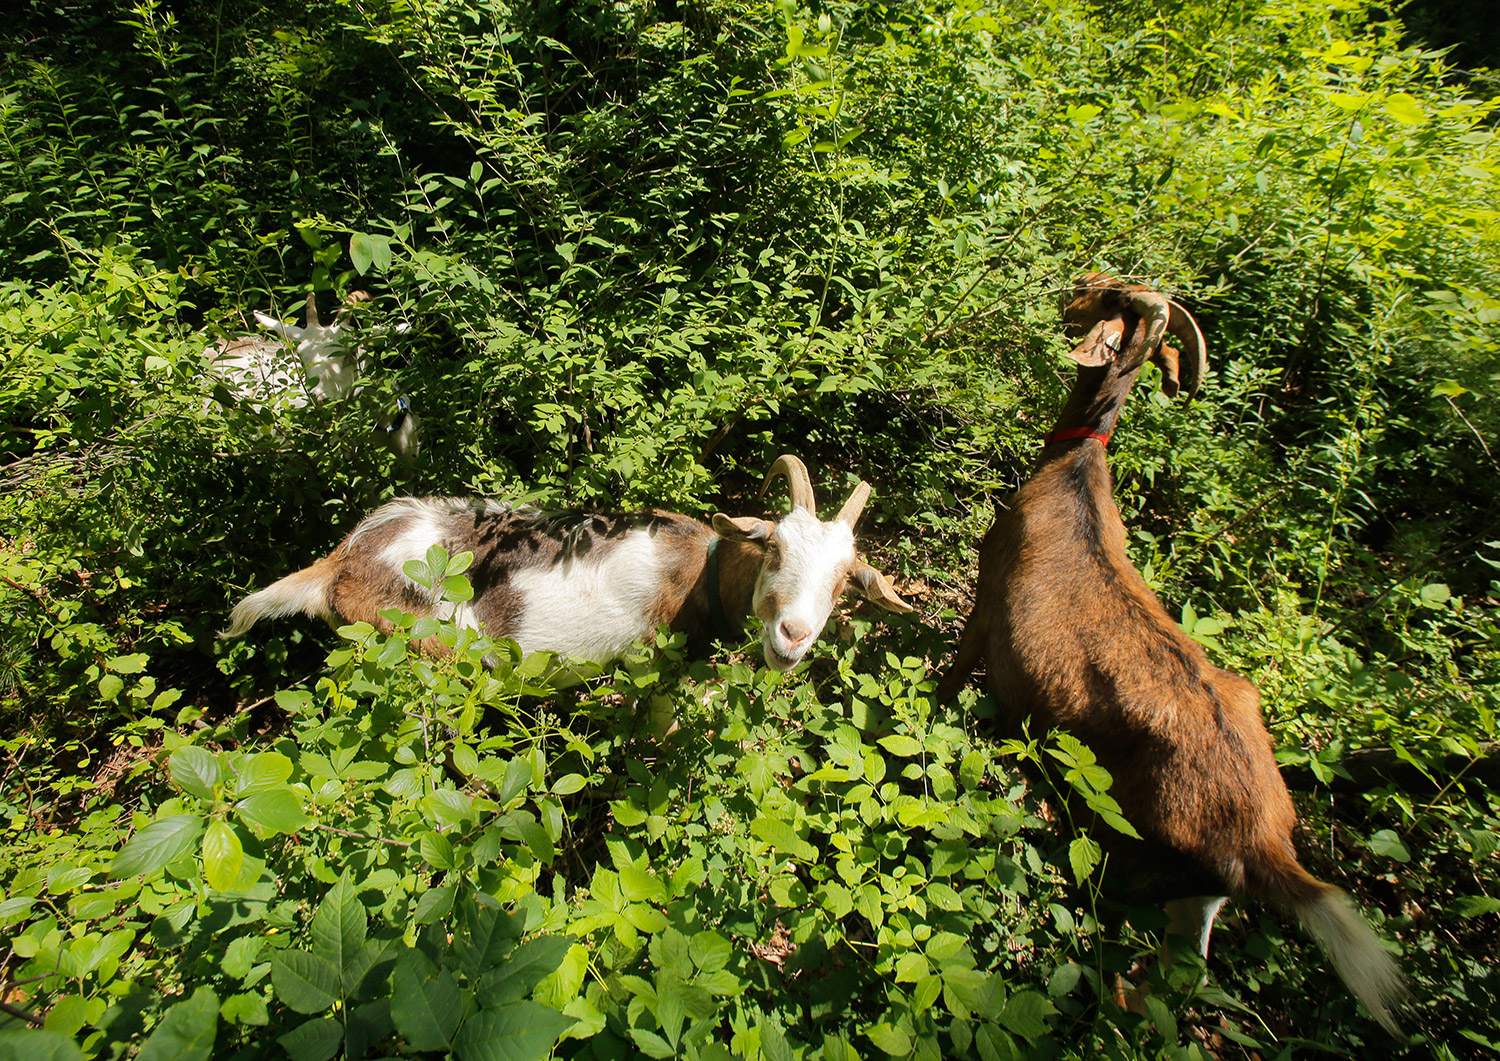 Standing in heavy vegetation, Zephyr, center, and Sawyer, right, eat leaves at a home in Kittery, clearing unwanted vegetation.